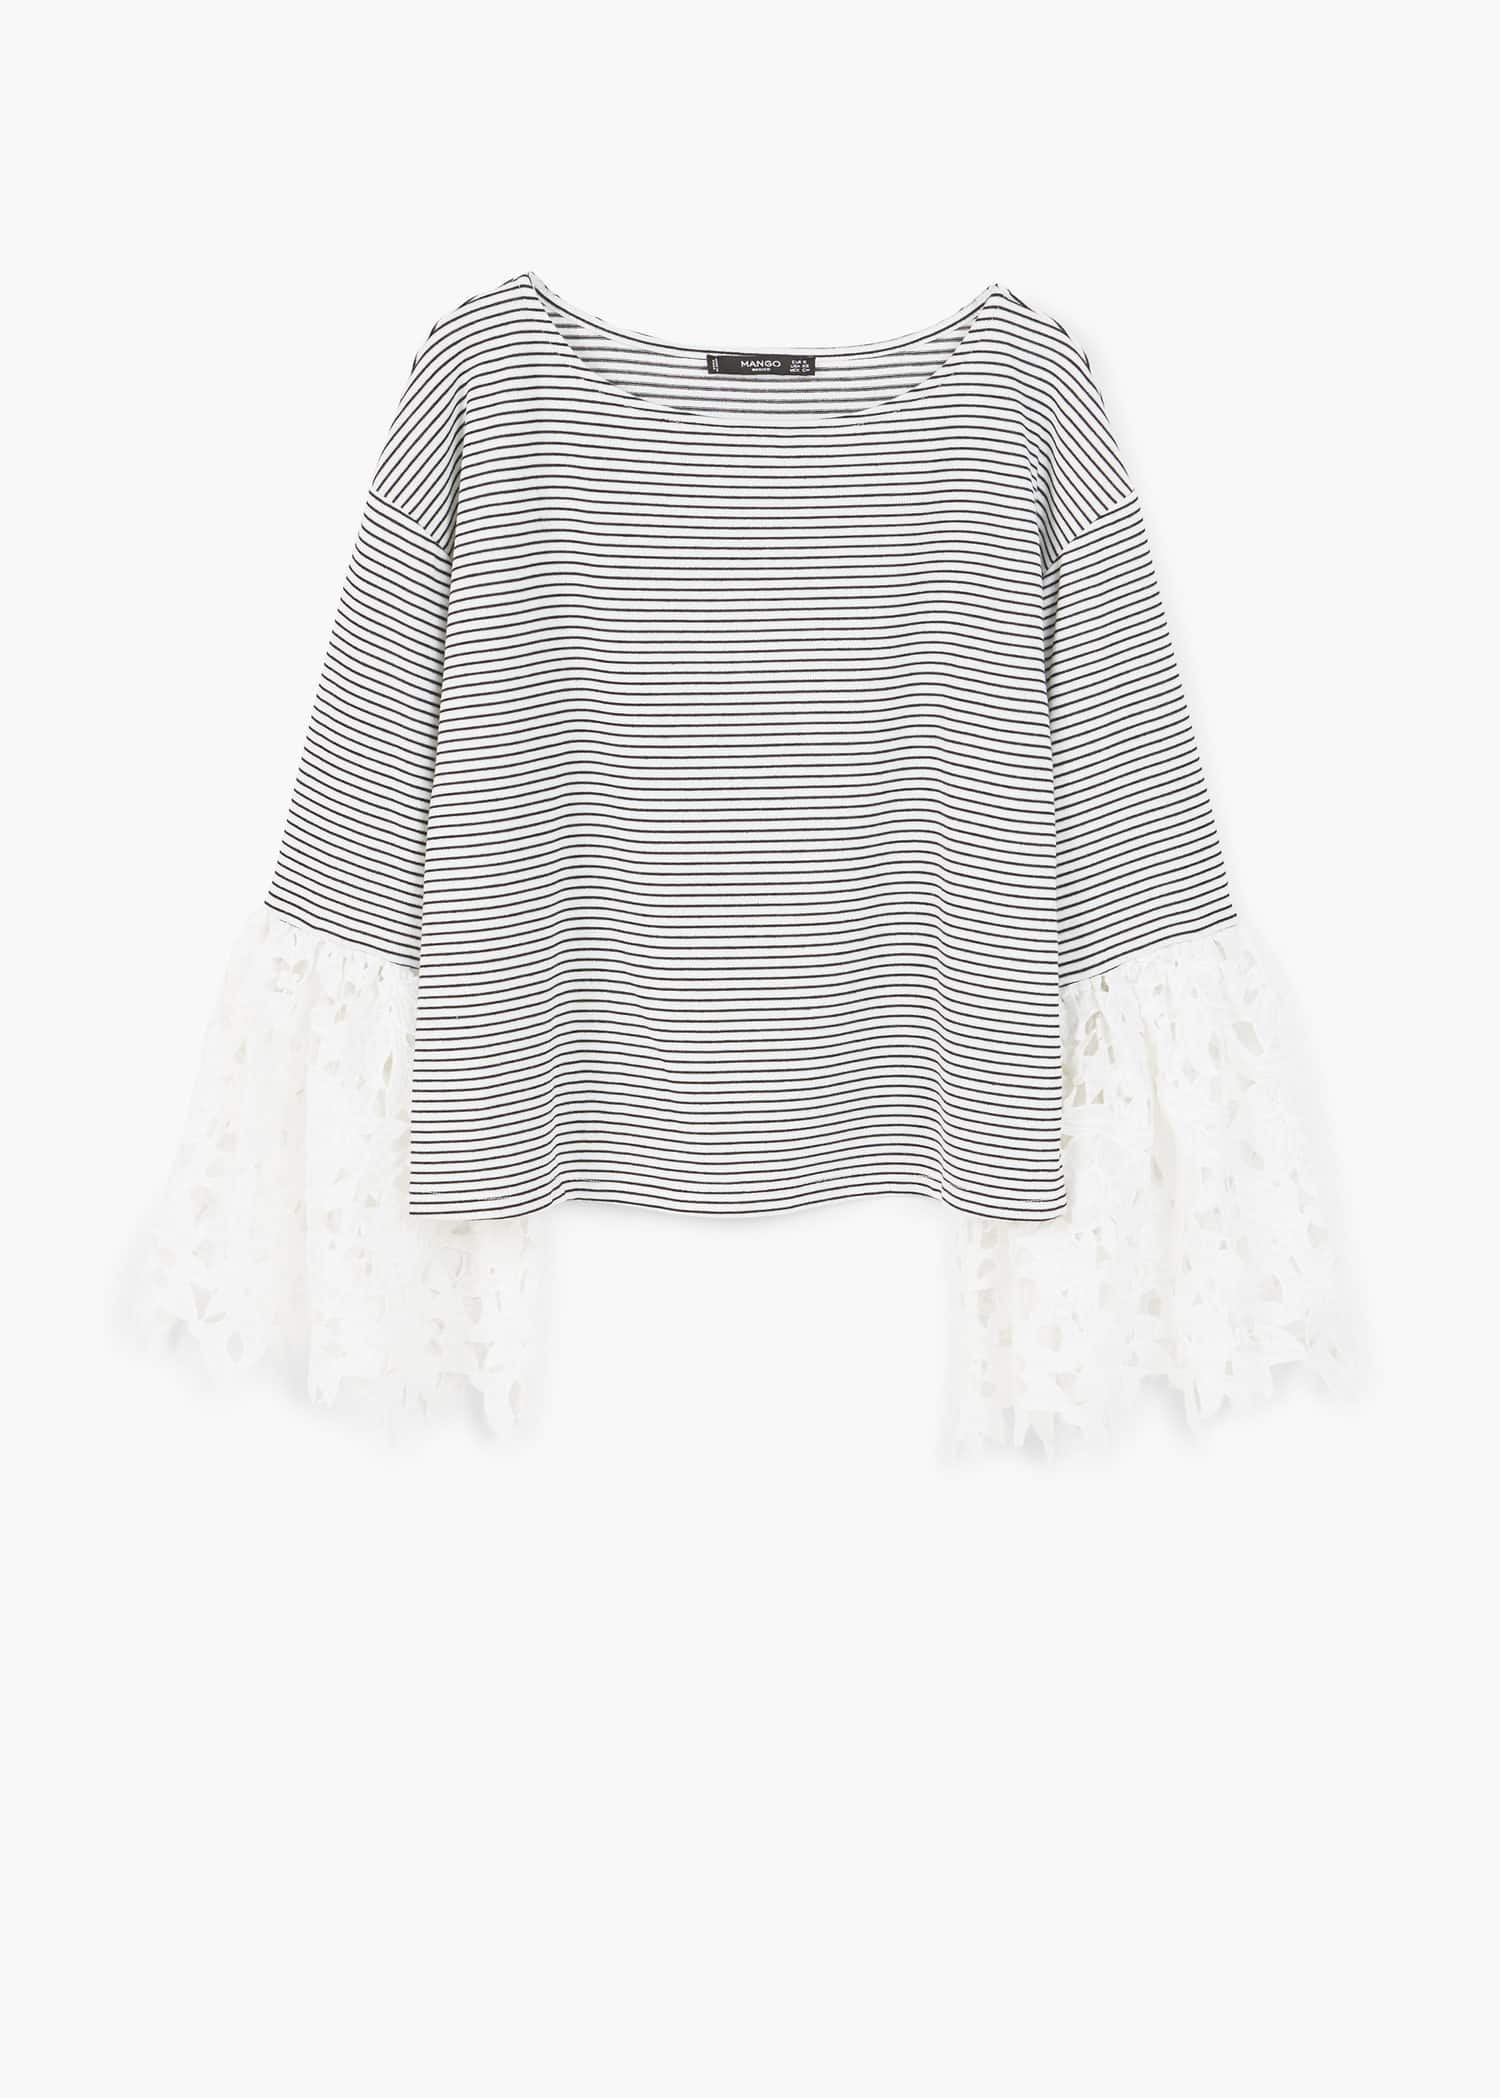 Lace sleeve t shirt Woman | OUTLET Denmark